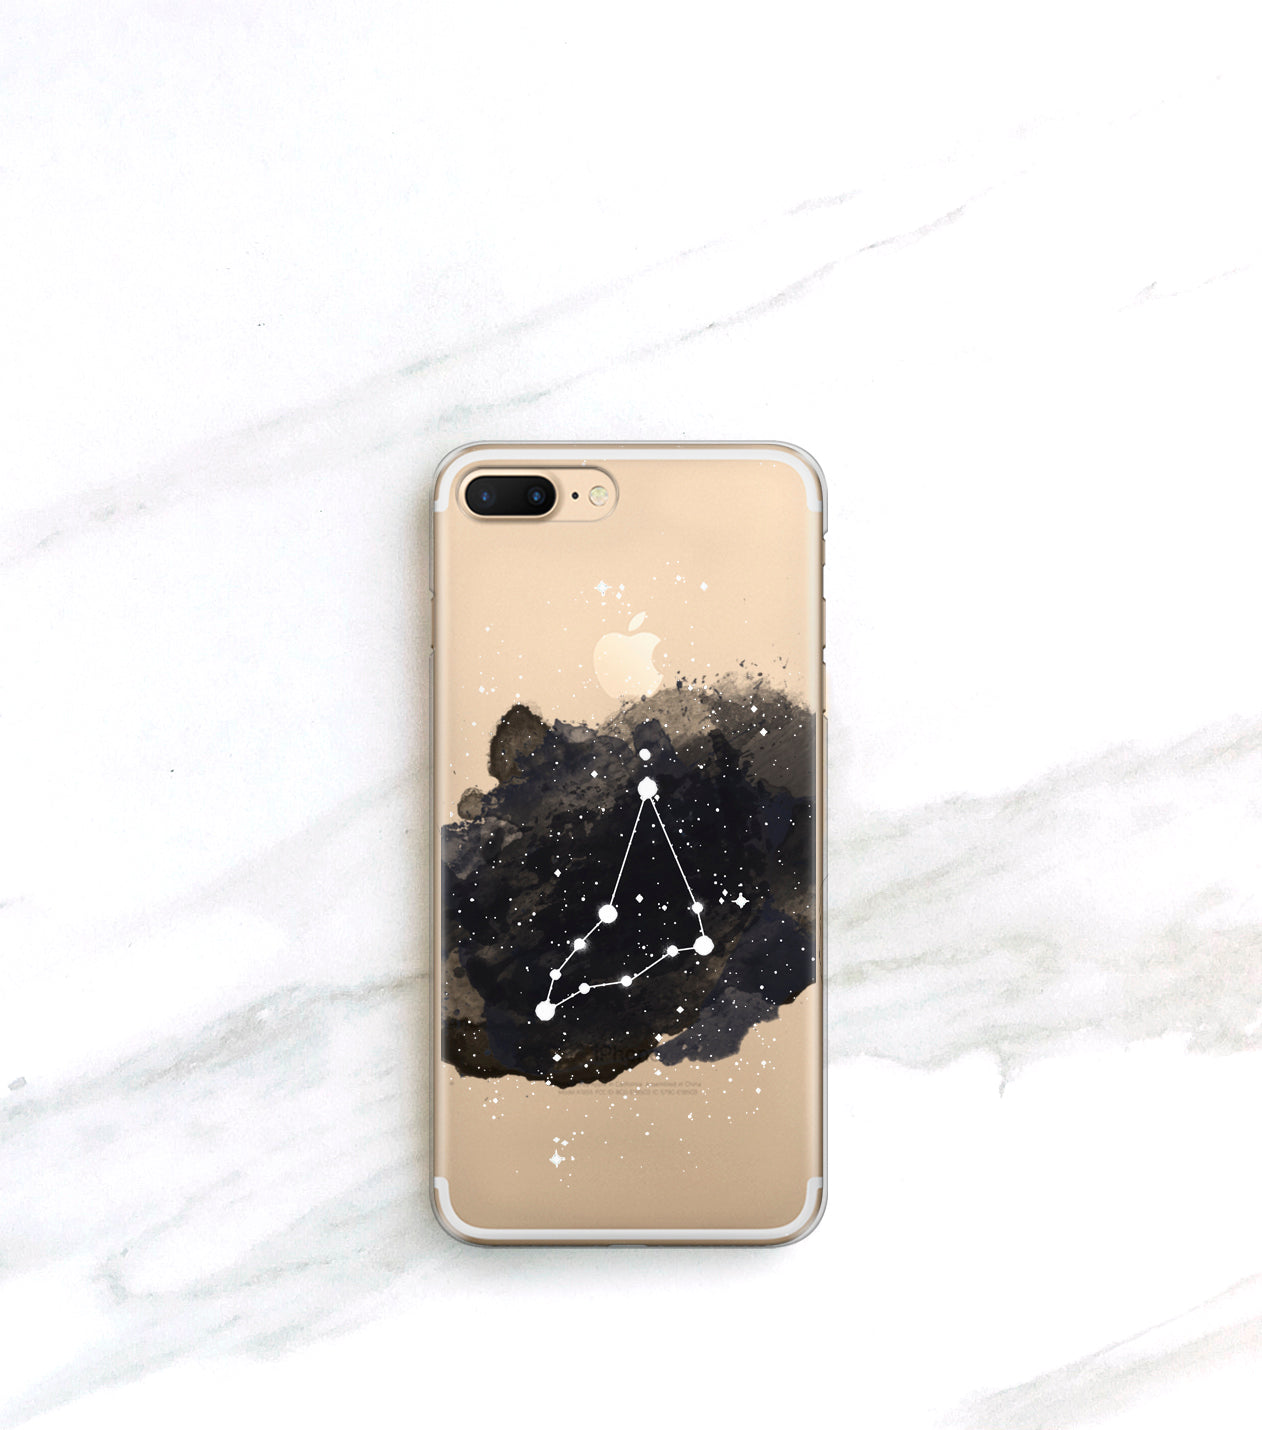 outlet store e9068 2a6e4 Zodiac Constellation Case for iPhone - Joy Merryman Store